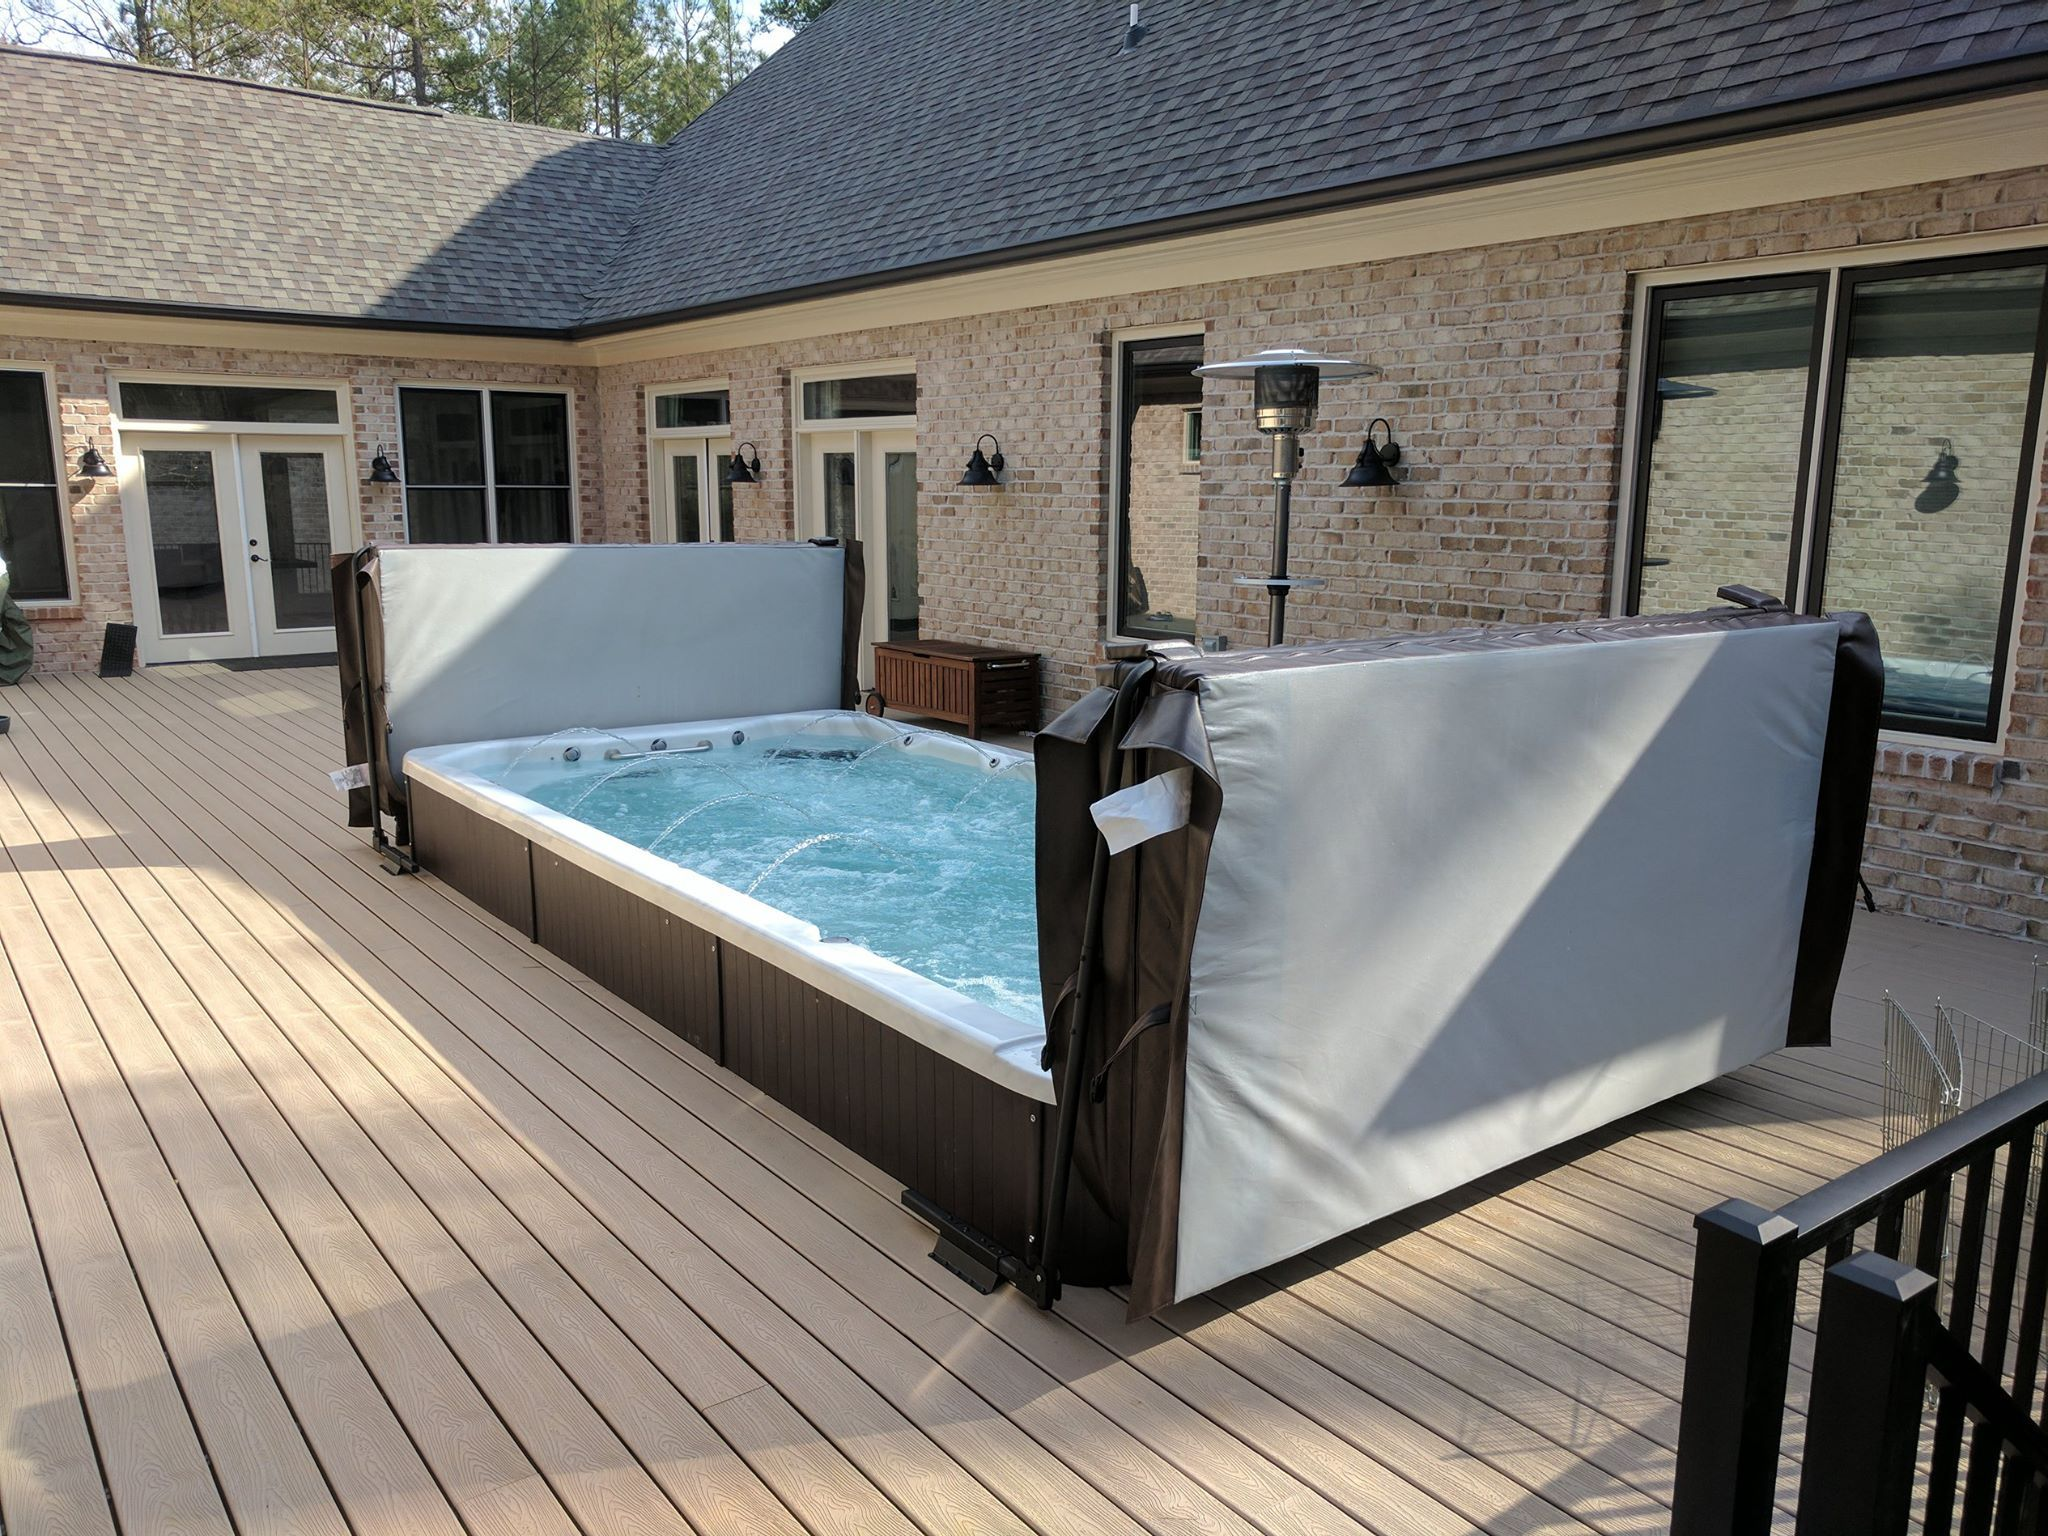 Pin By Lisa Cutler On Landscape Ideas Luxury Spa Spa Design Swimming Pools